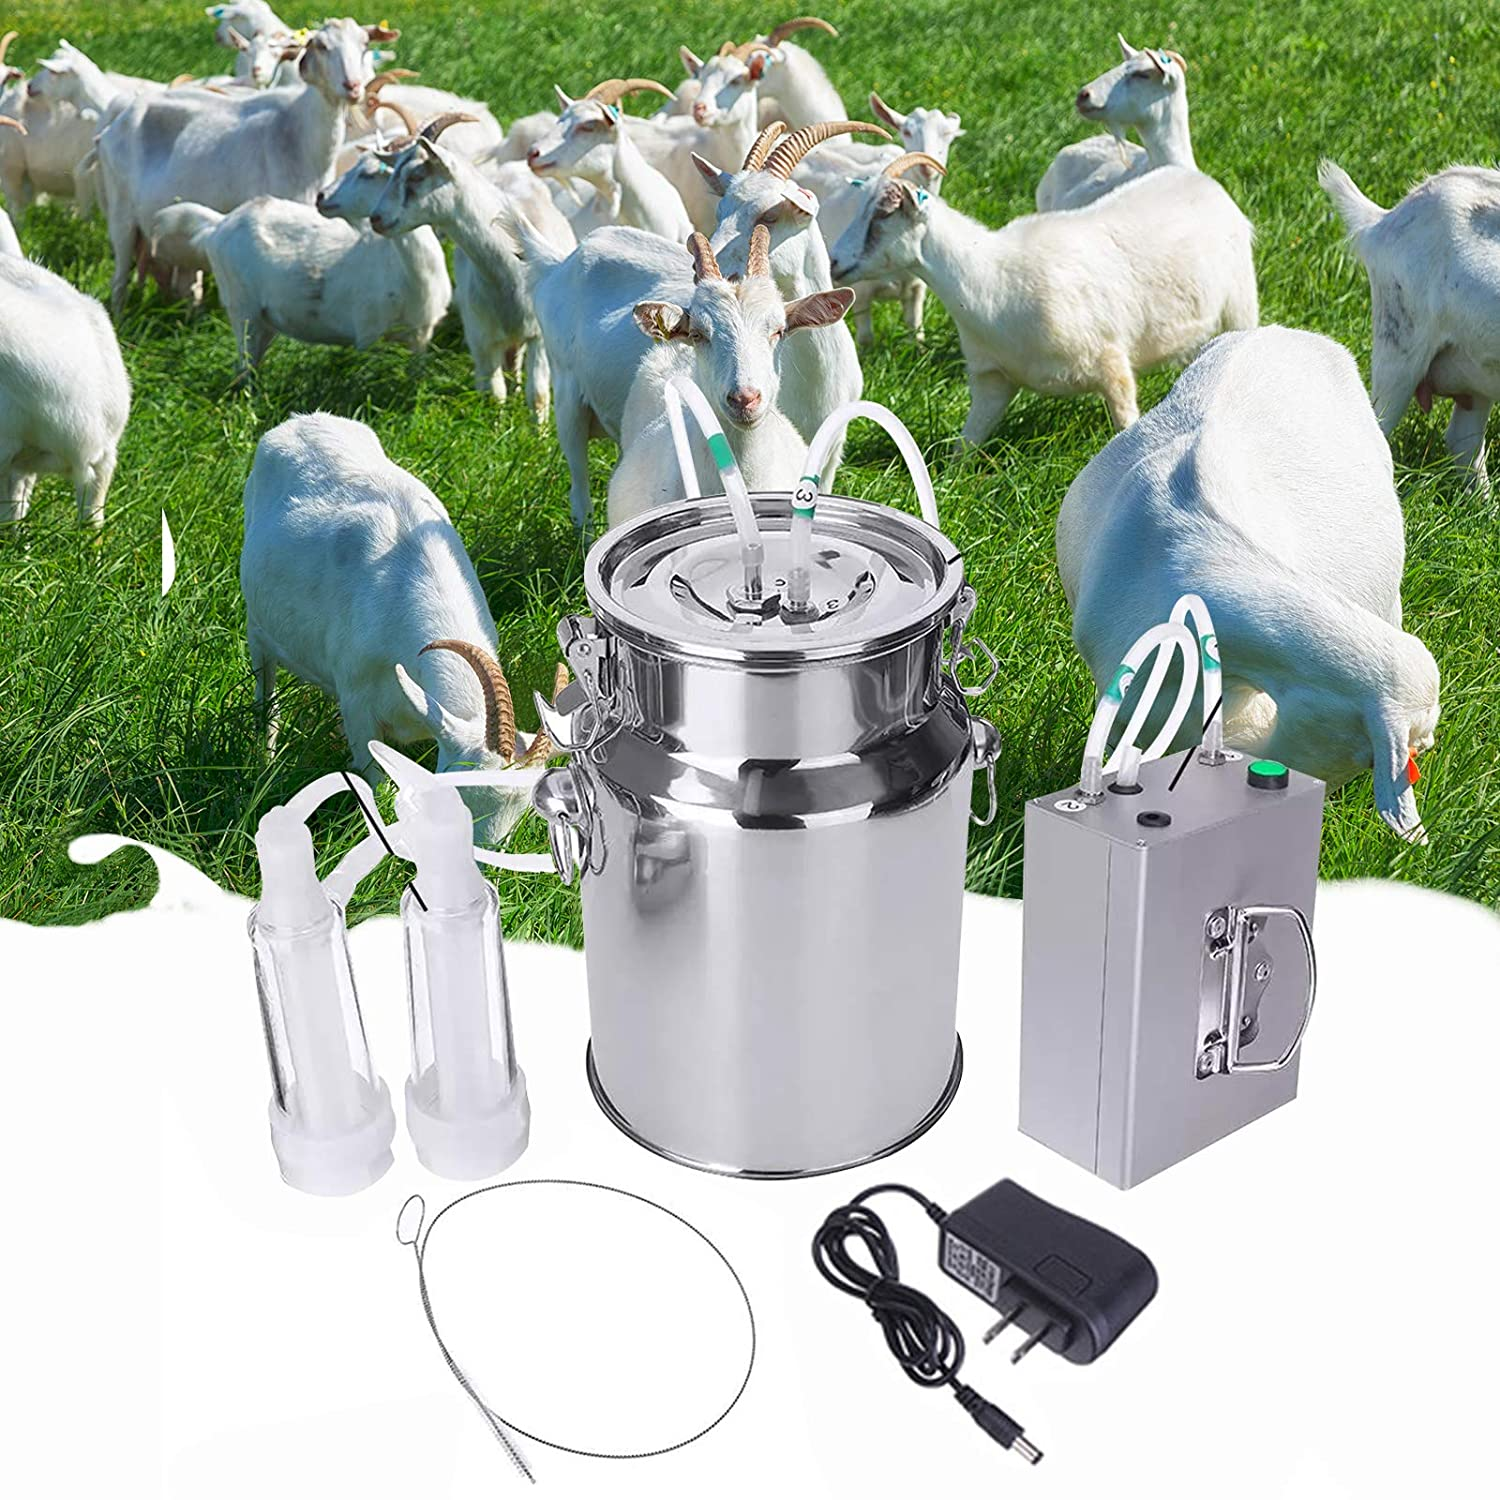 KECOP Goat Milking Machine 7L Electric Vacuum Pulsation Suction Pump Milker Machine Auto-Stop Device for Cow Goat Sheep Livestock Household Farm Stainless Steel Food Grade Bucket Milking Device